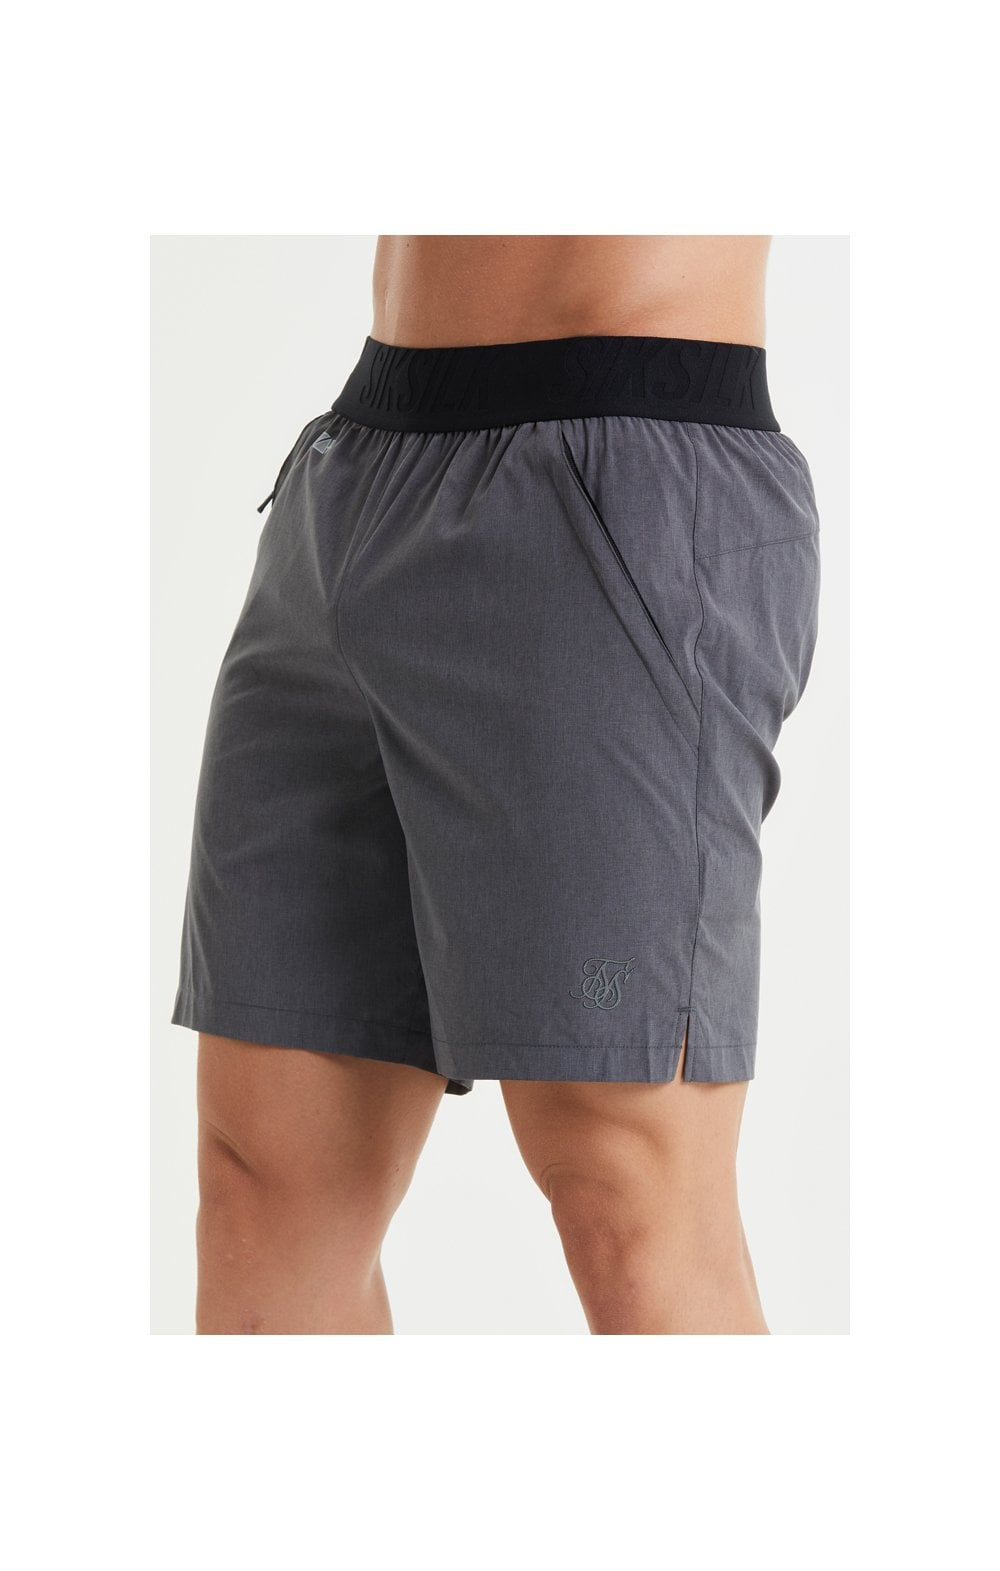 Load image into Gallery viewer, SikSilk Pressure Woven Long Shorts - Charcoal Marl (2)